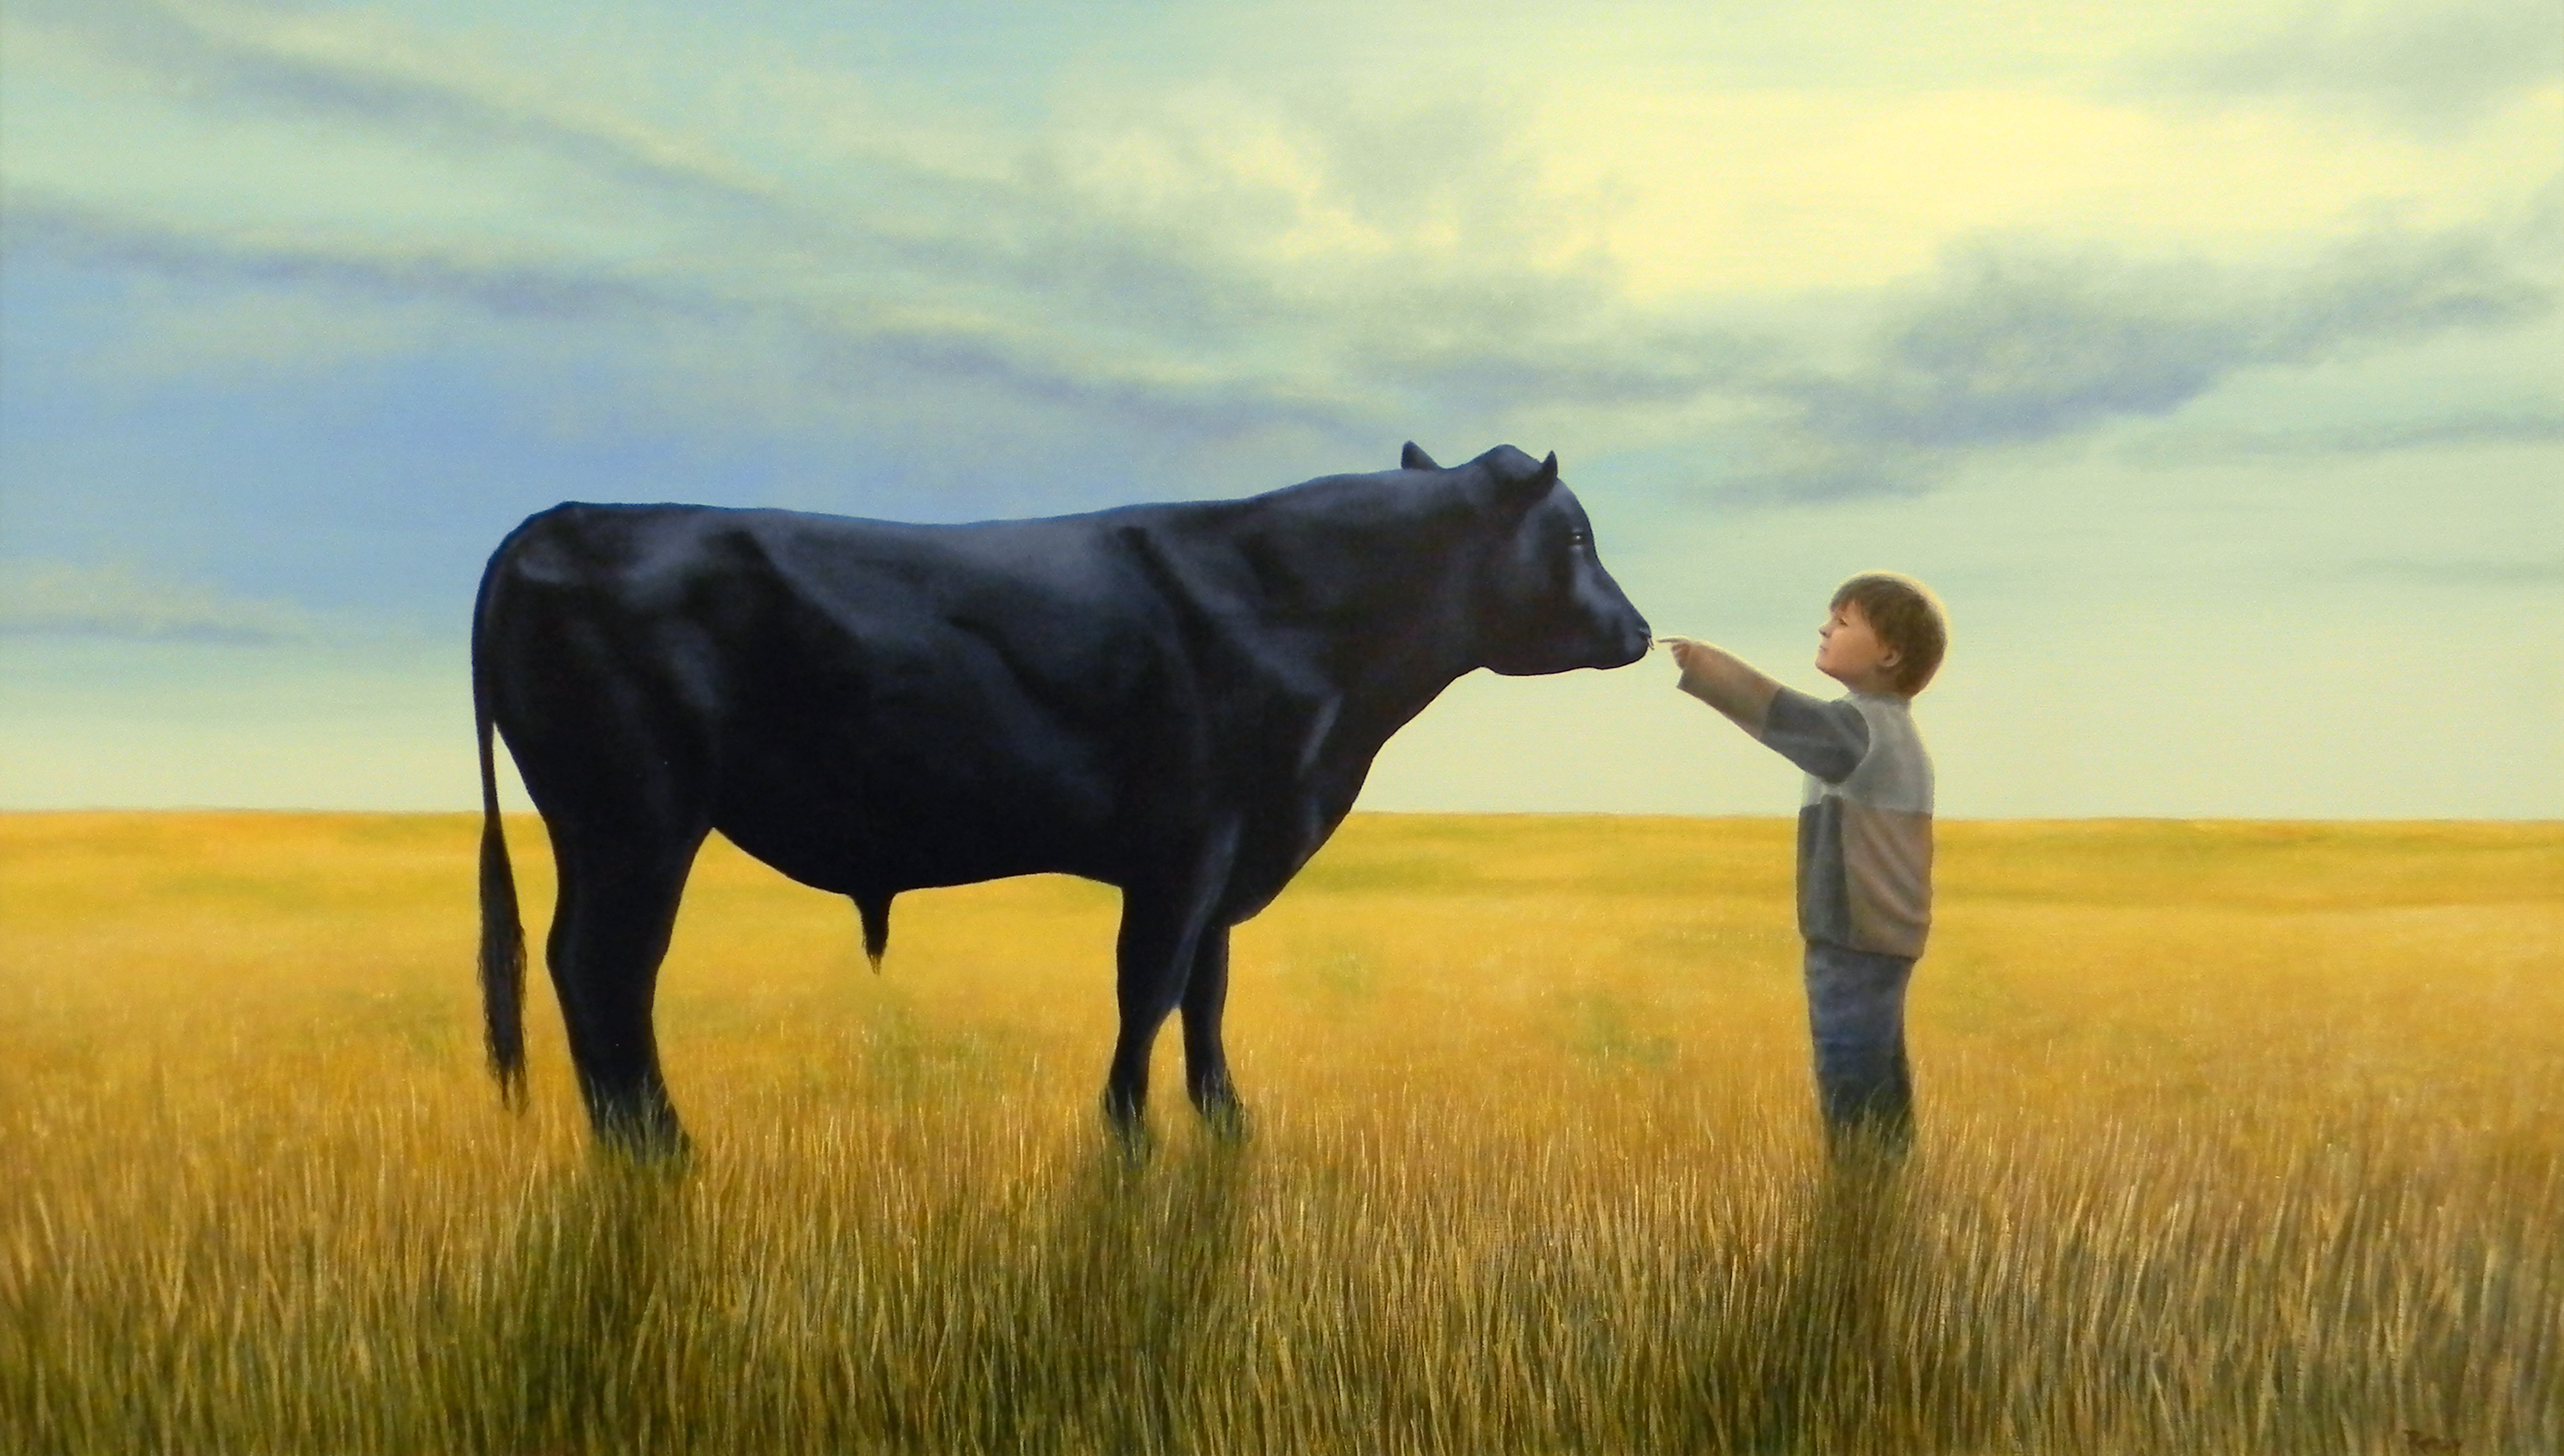 Small Human with Bull